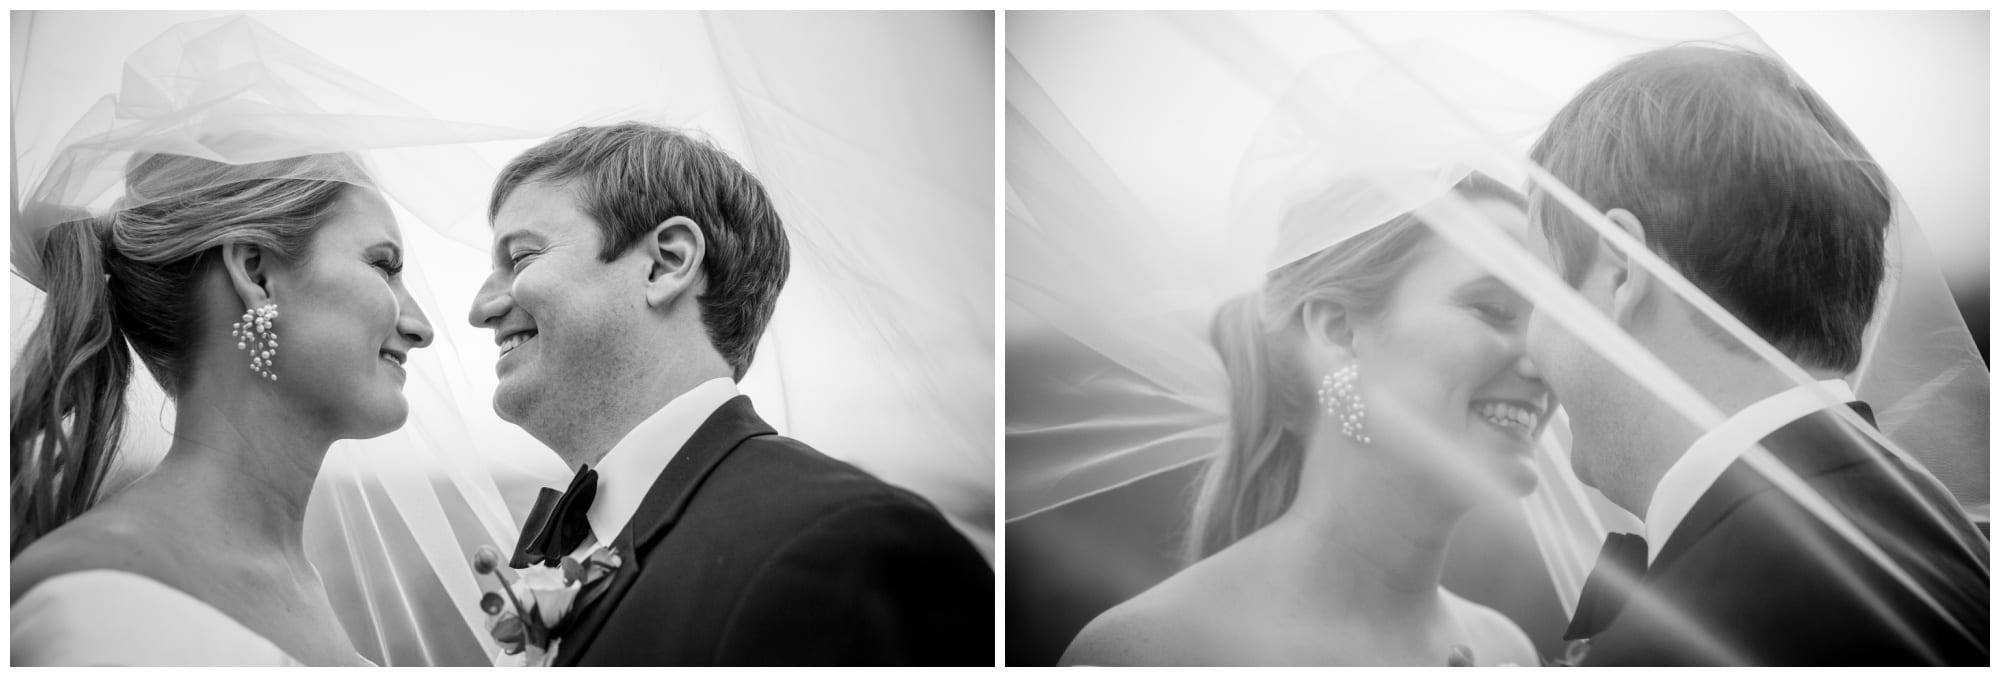 Veil photographs in black and white